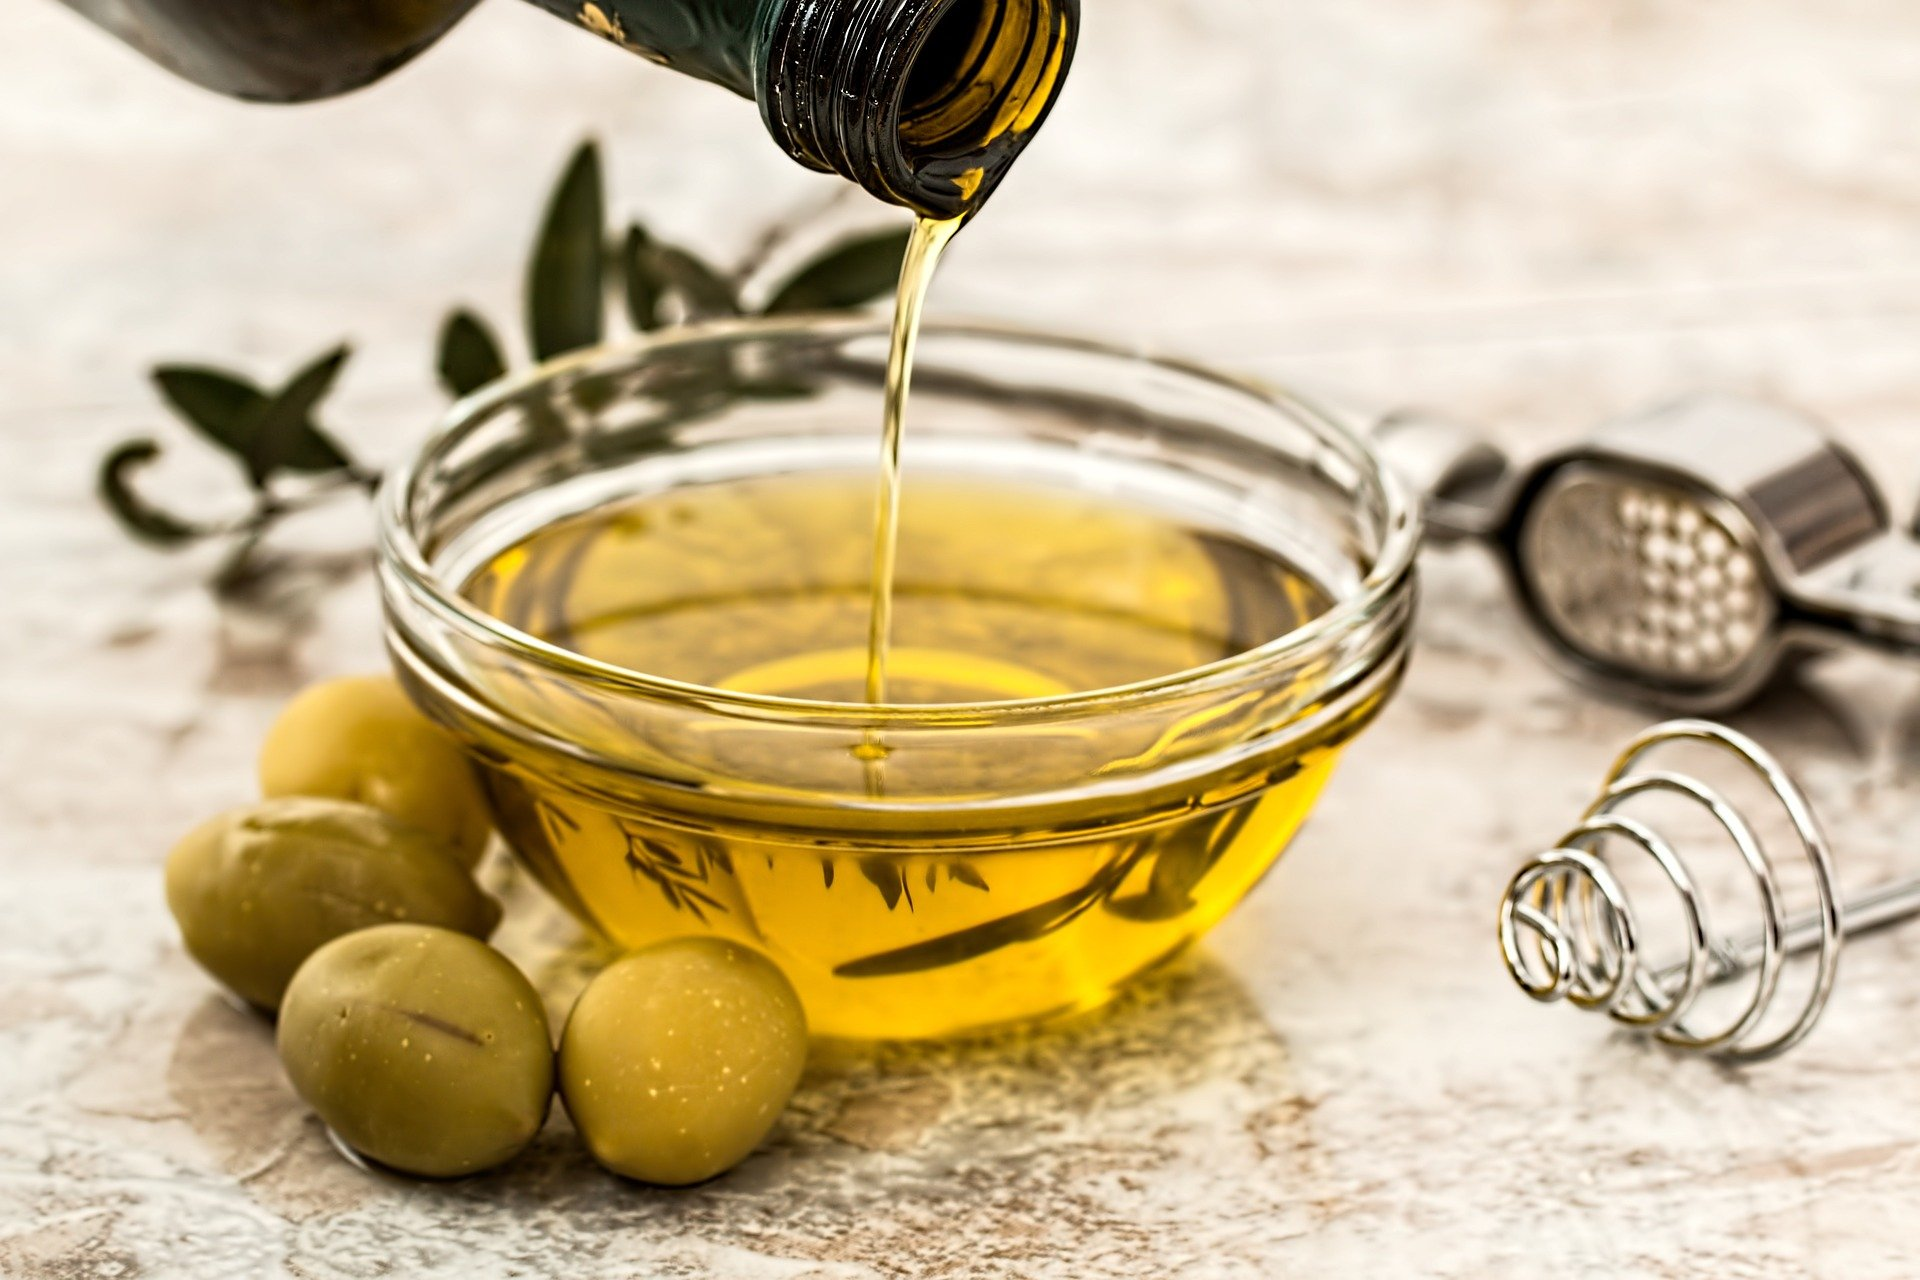 Can Olive Oil Really Help When You're Feeling Constipated?